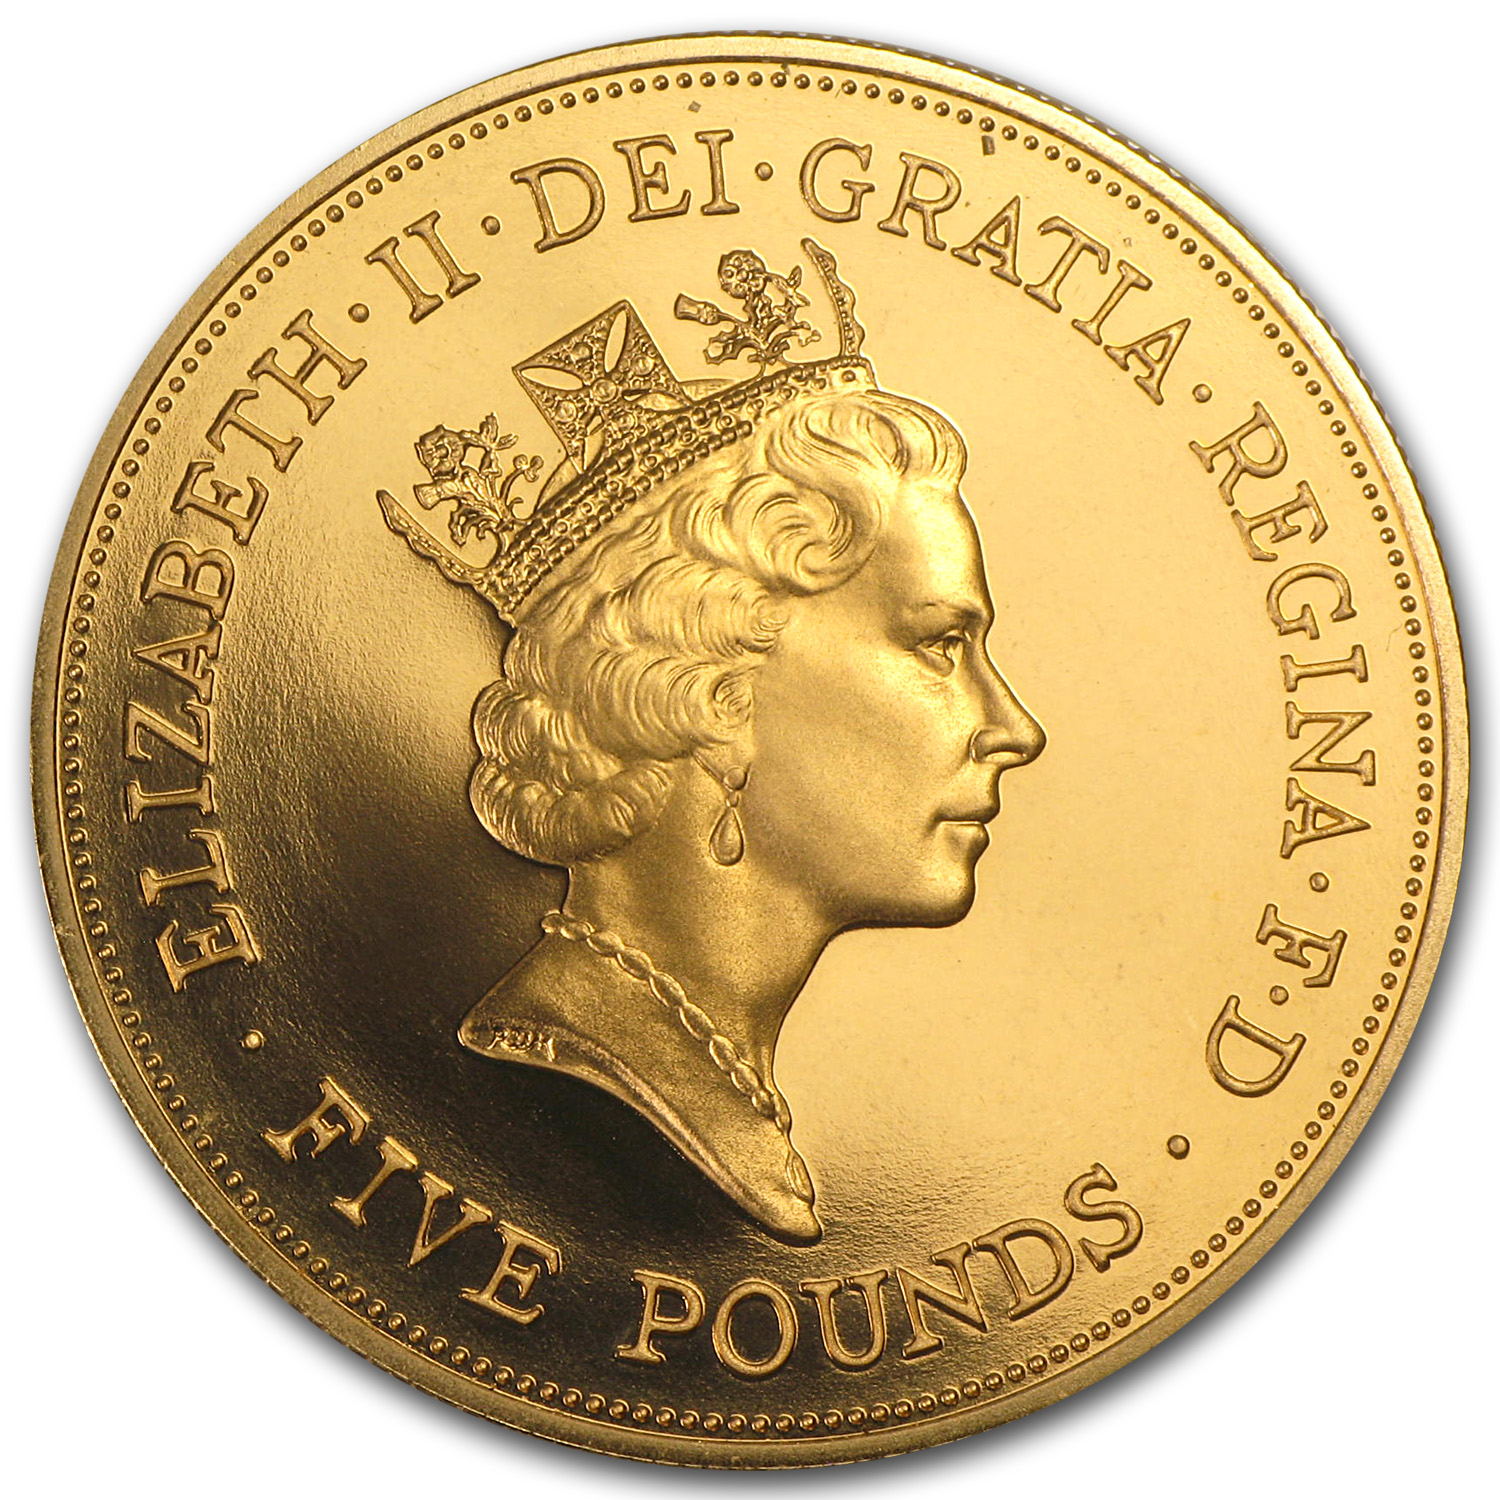 Great Britain 1990 Gold £5 Proof - Queen Mother